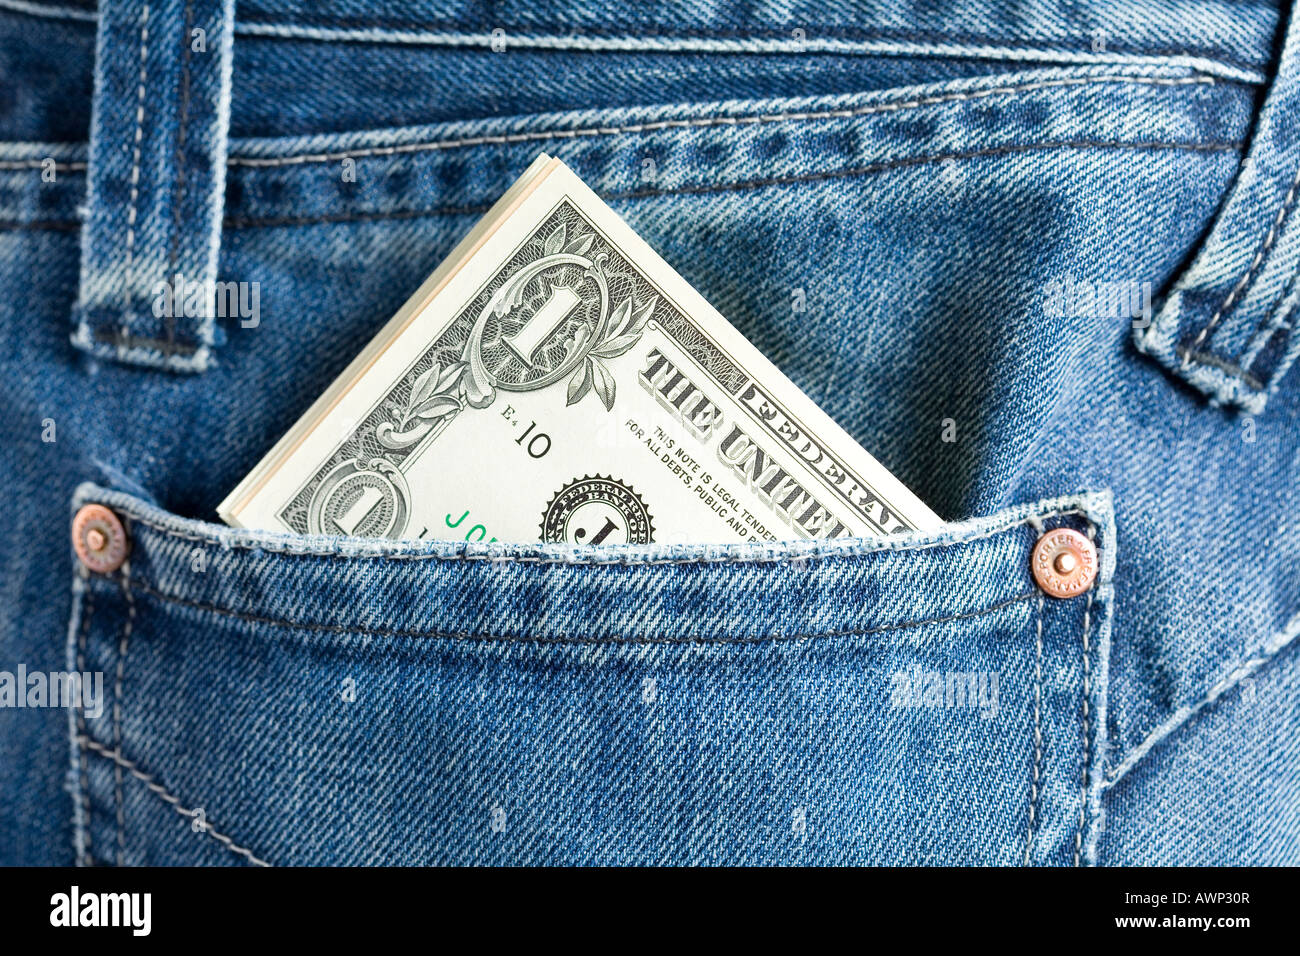 Cash (US dollars) sticking out of a jeans pocket - Stock Image